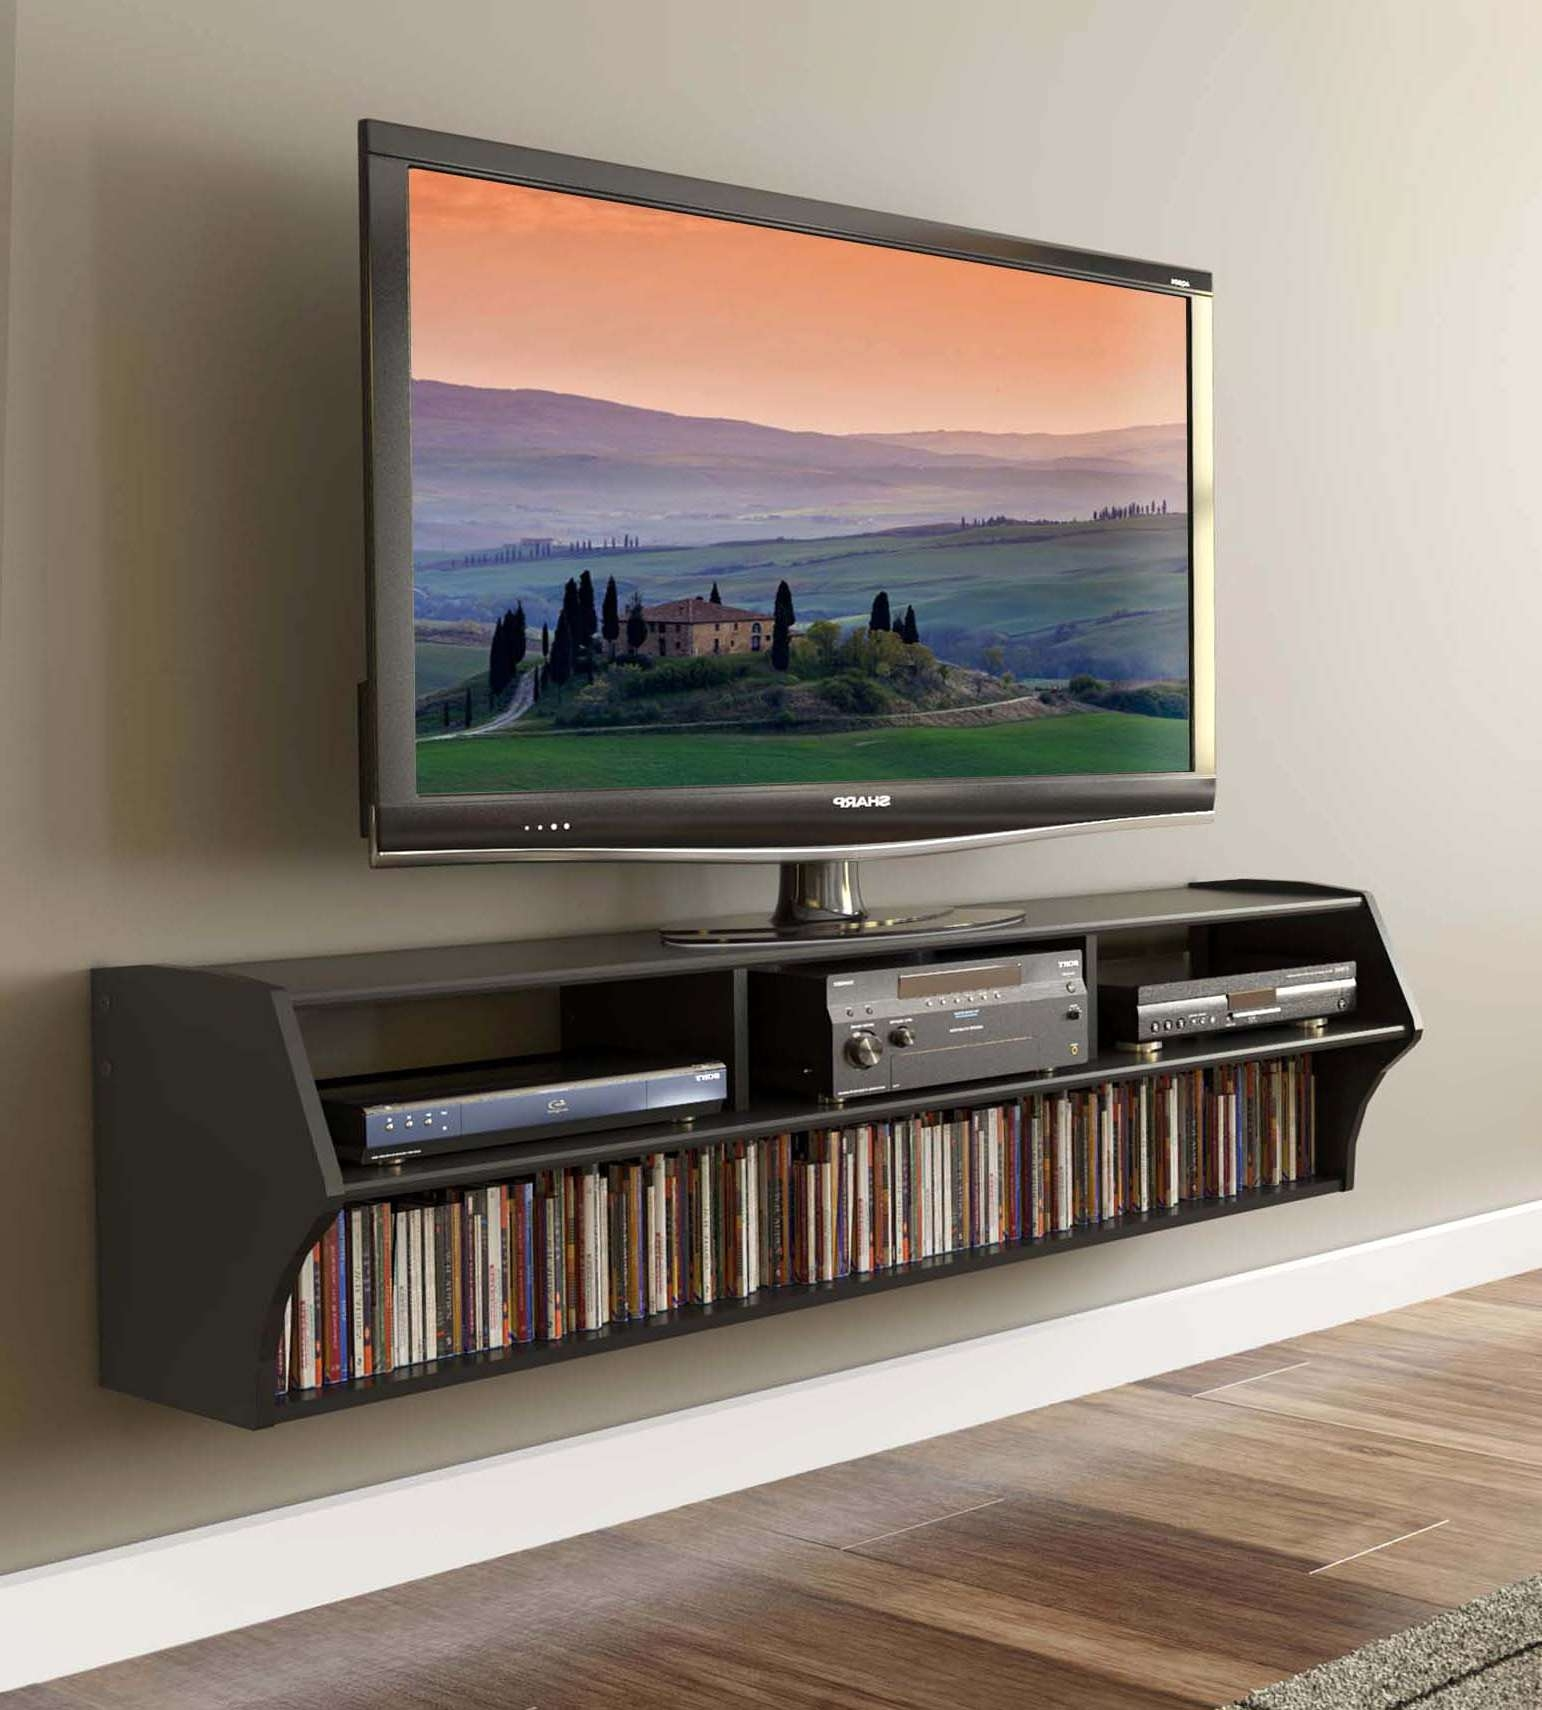 Wall Mounted Flat Screen Tv Cabinet With 58 Wide Black Wall In Wall Mounted Tv Cabinets For Flat Screens (View 17 of 20)